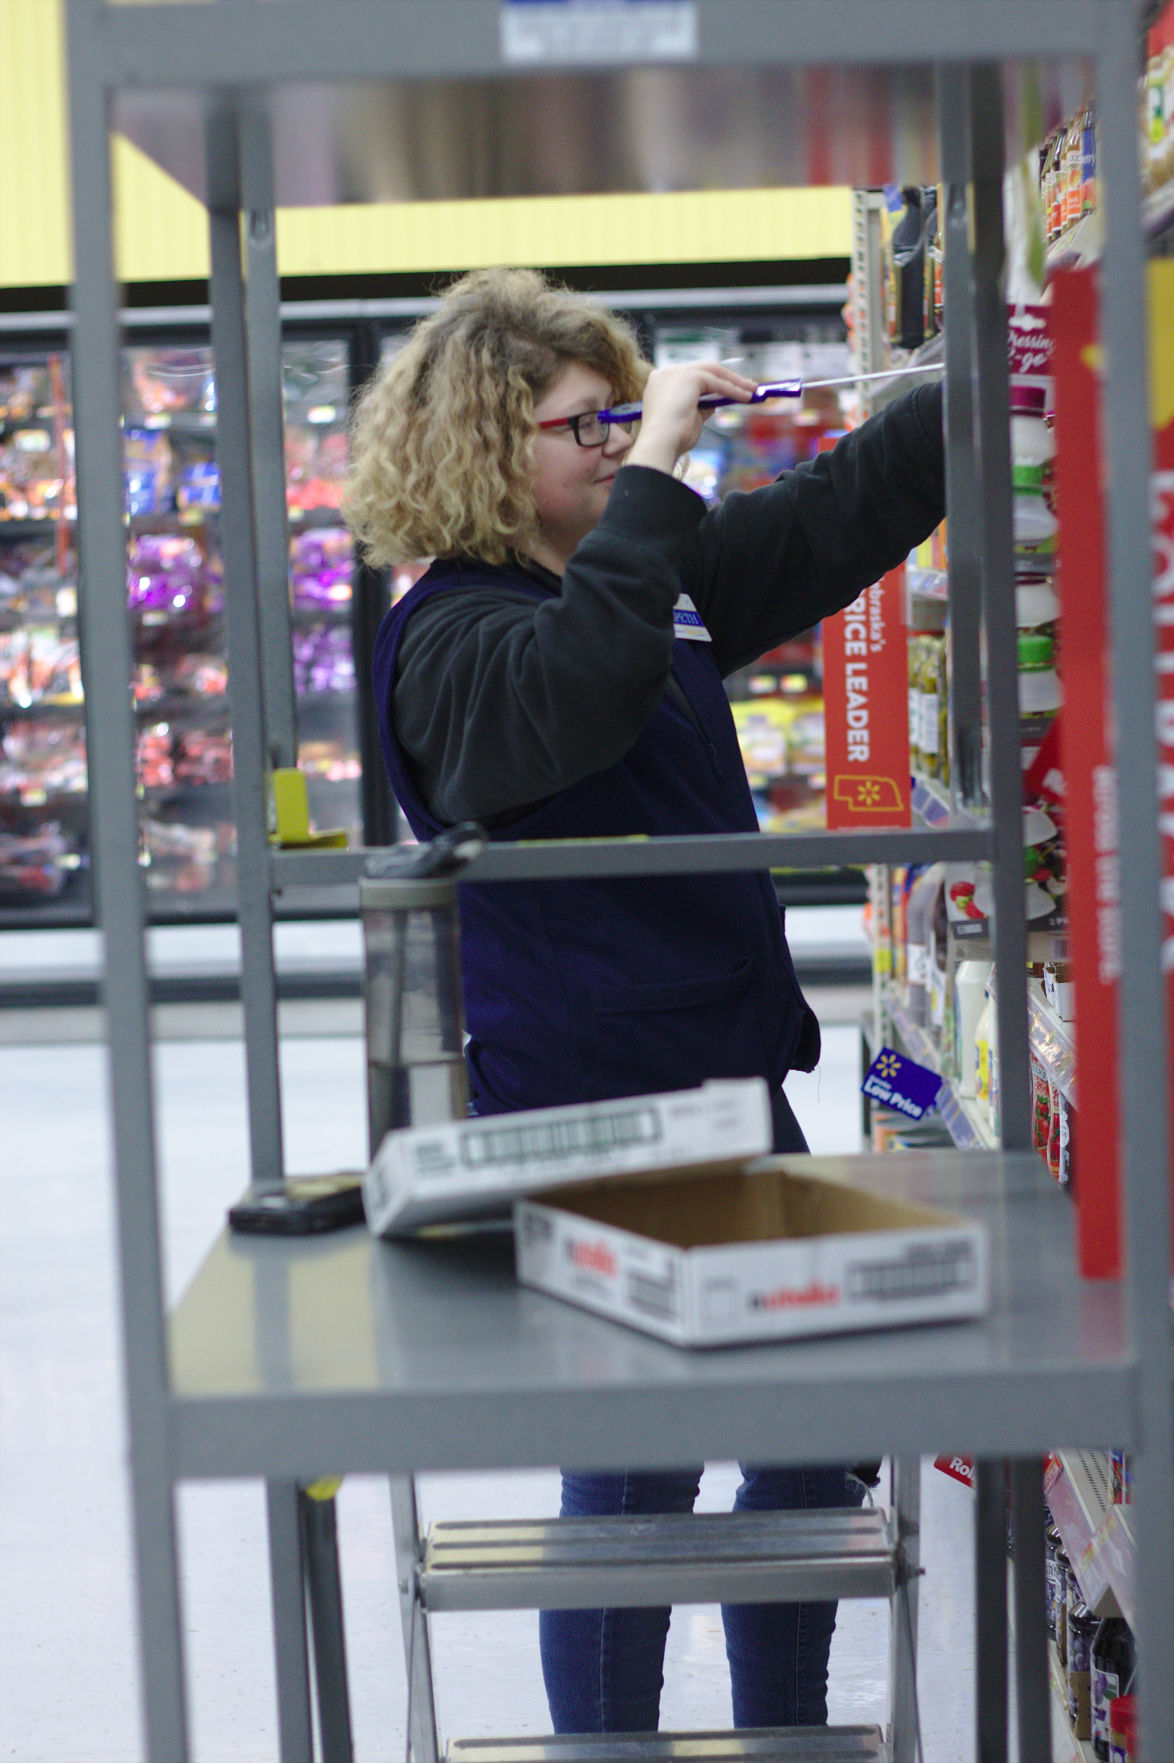 Chadron Walmart marks 20 years in community | Chadron